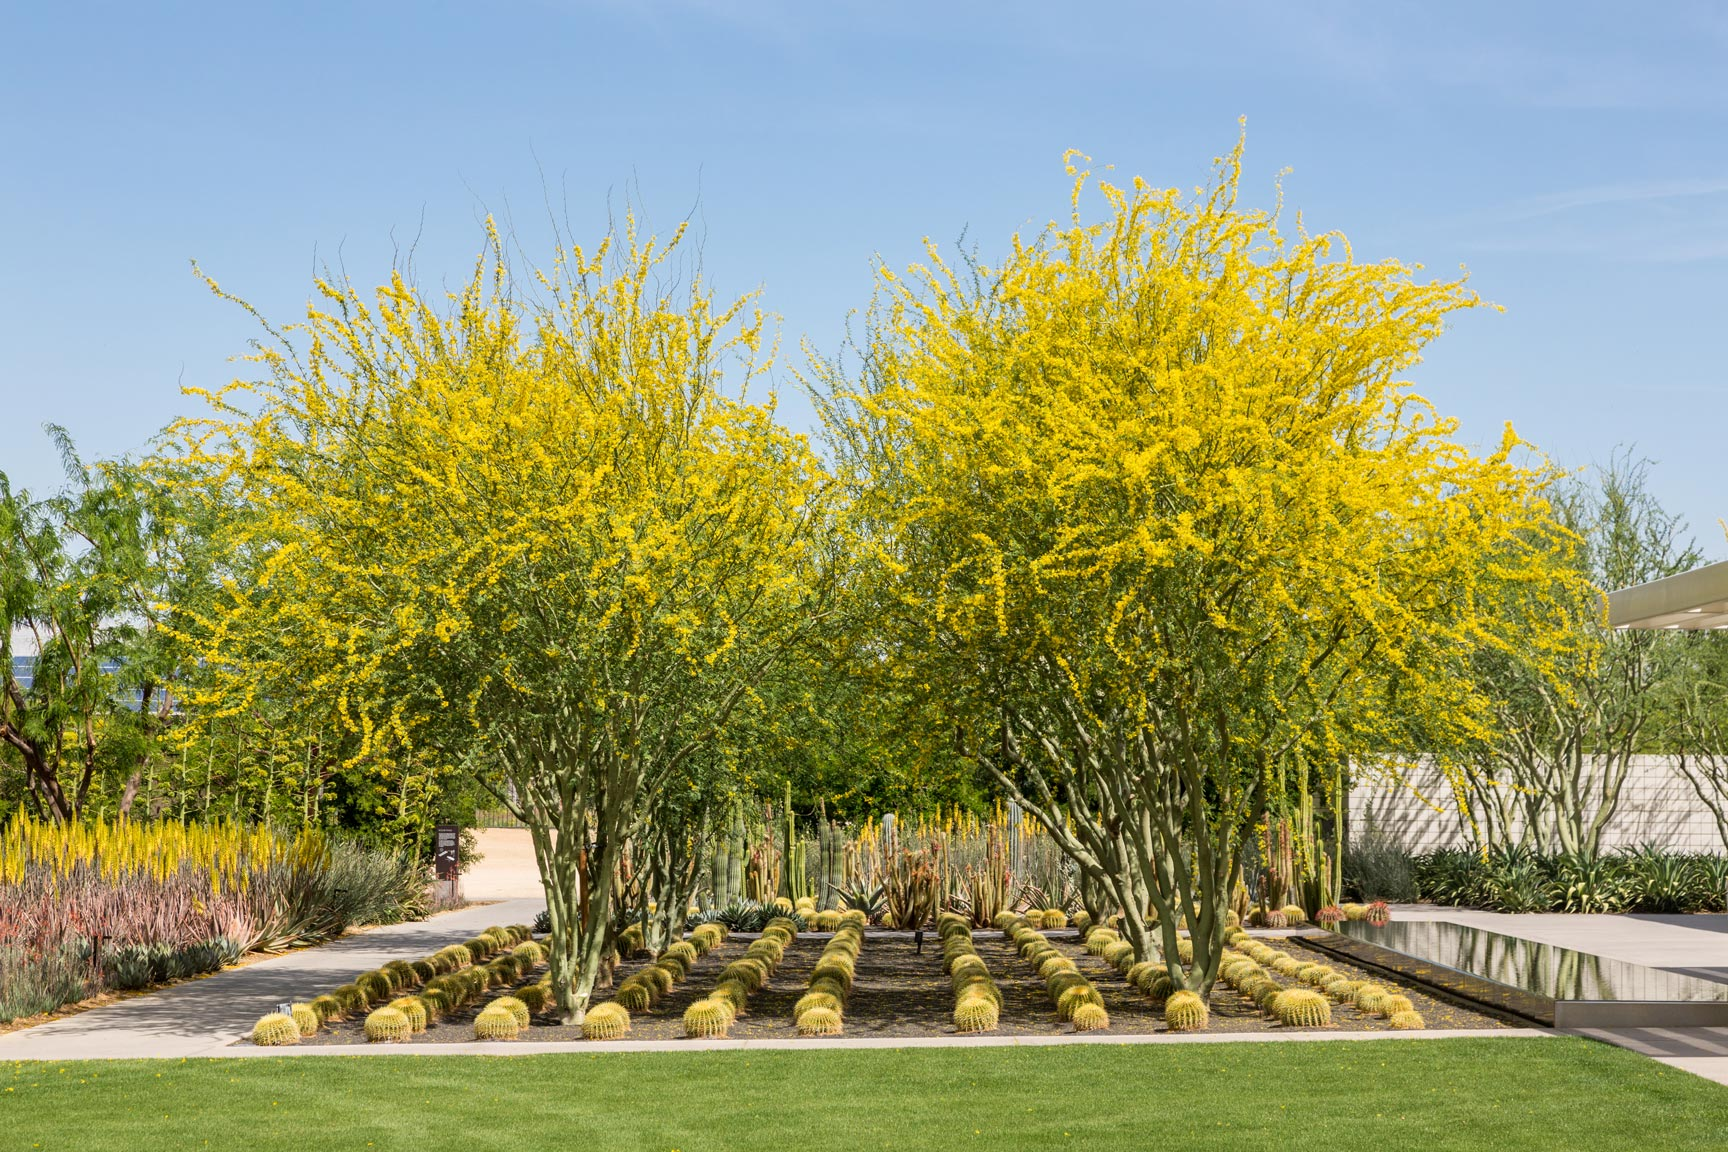 A group of Palo Brea trees blooming above multiple Golden Barrel cacti in a planter filled with black scoria.